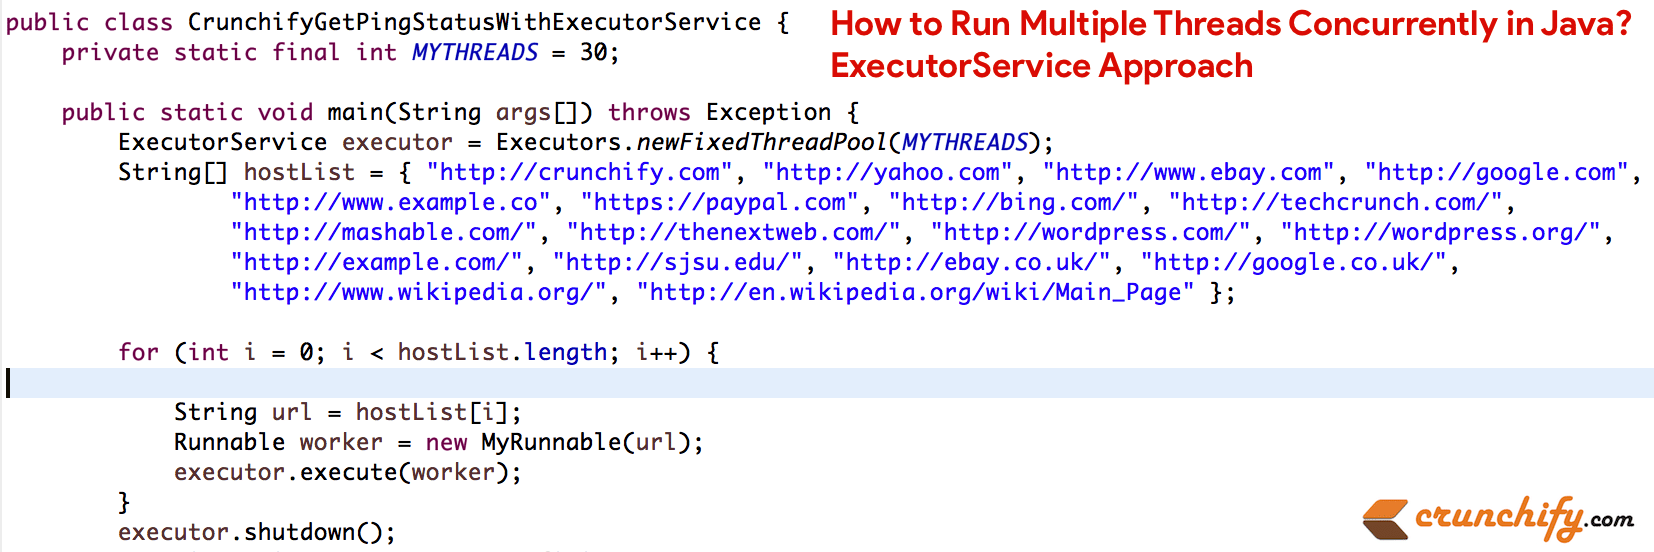 How to Run Multiple Threads Concurrently in Java? ExecutorService